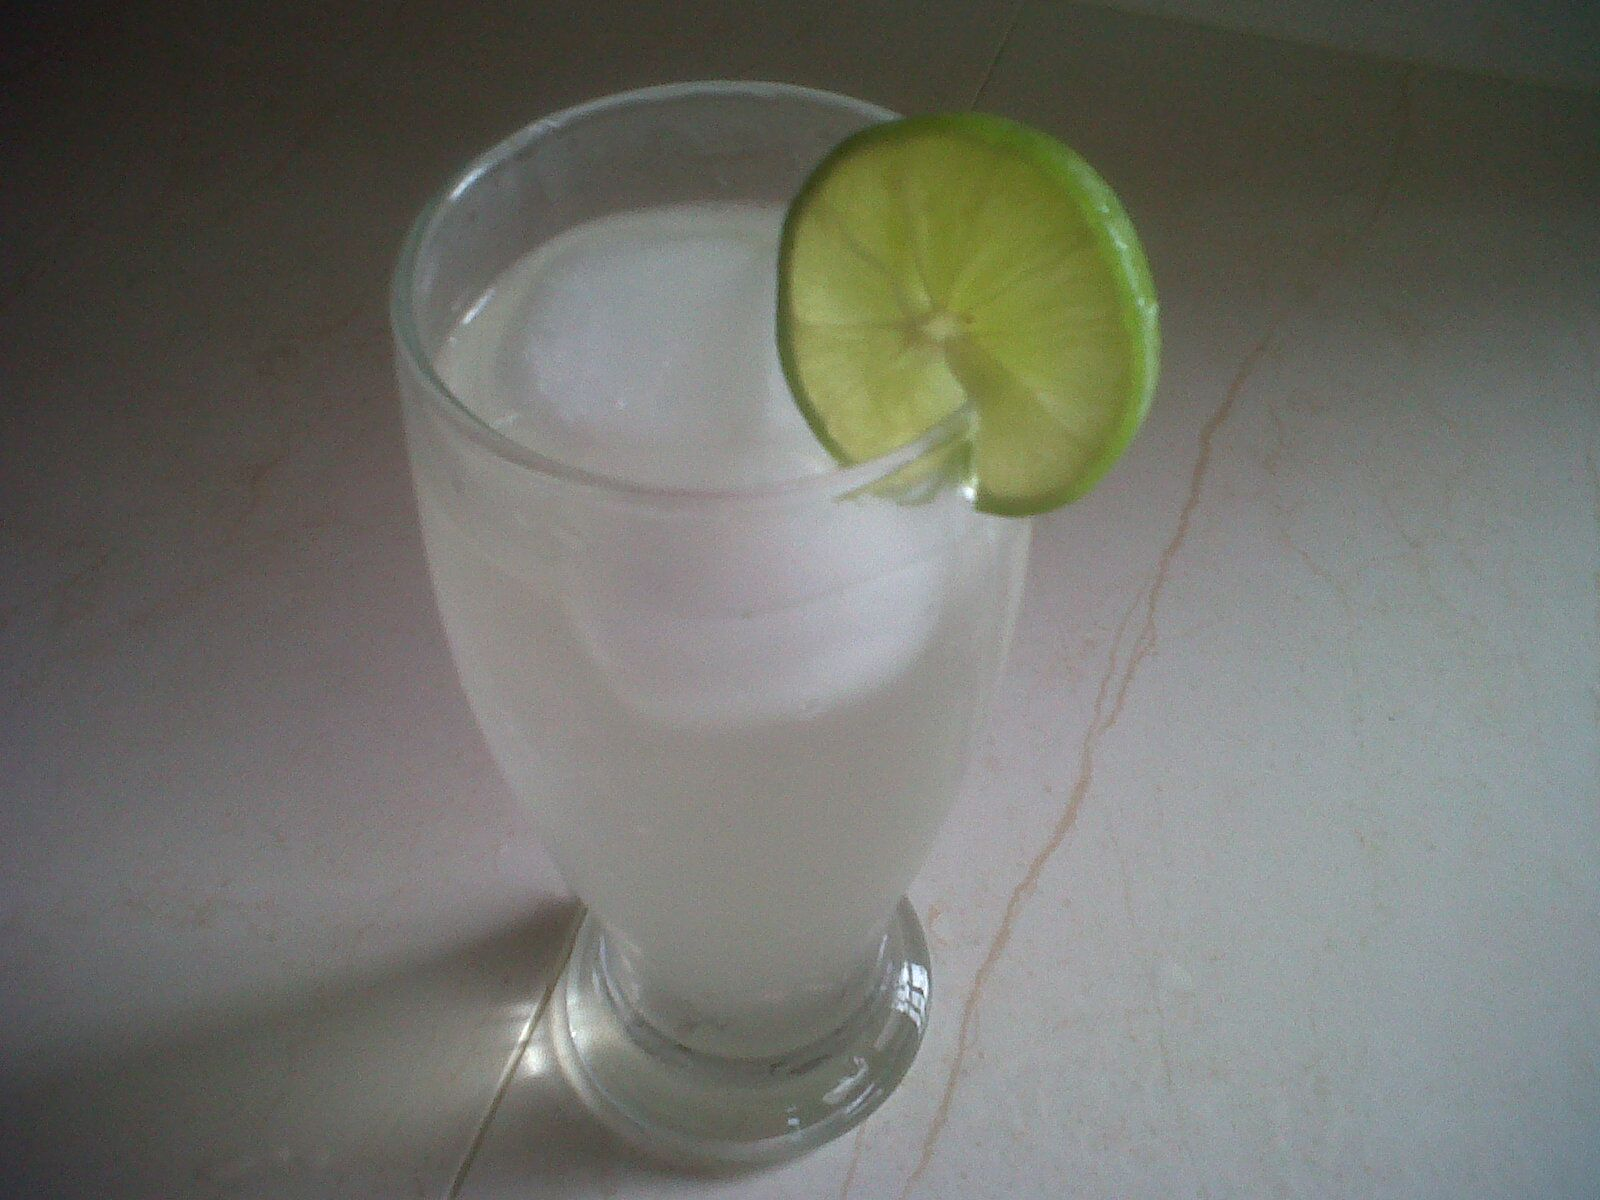 Ice cold lemonade ( well made with limes)